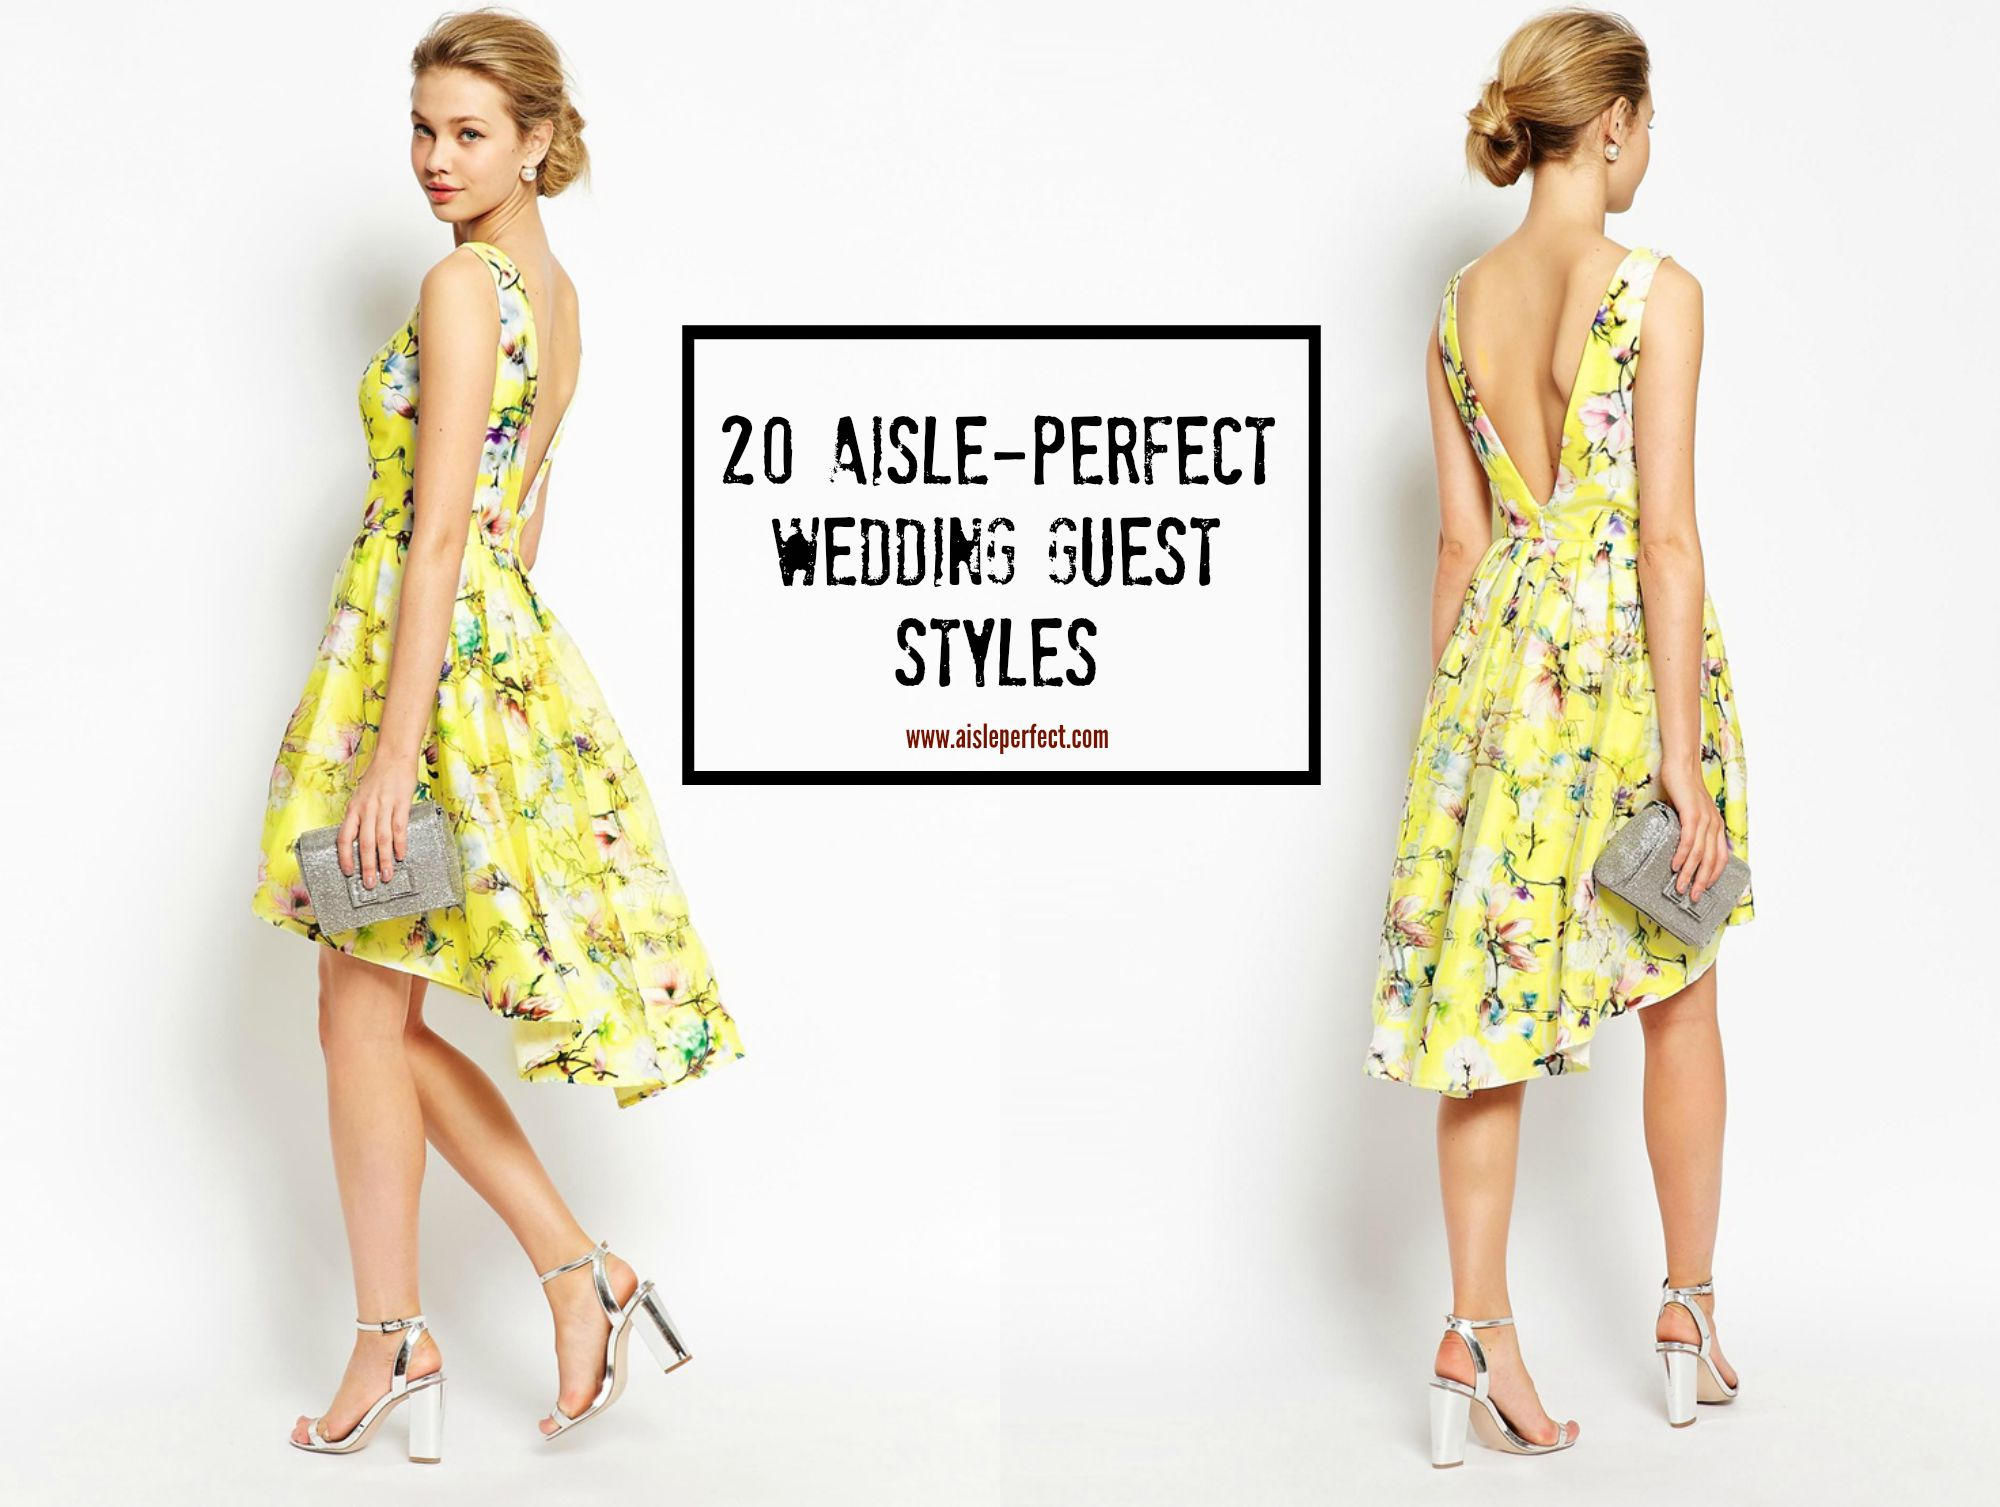 20 Aisle Perfect wedding guest styles by Chi Chi London